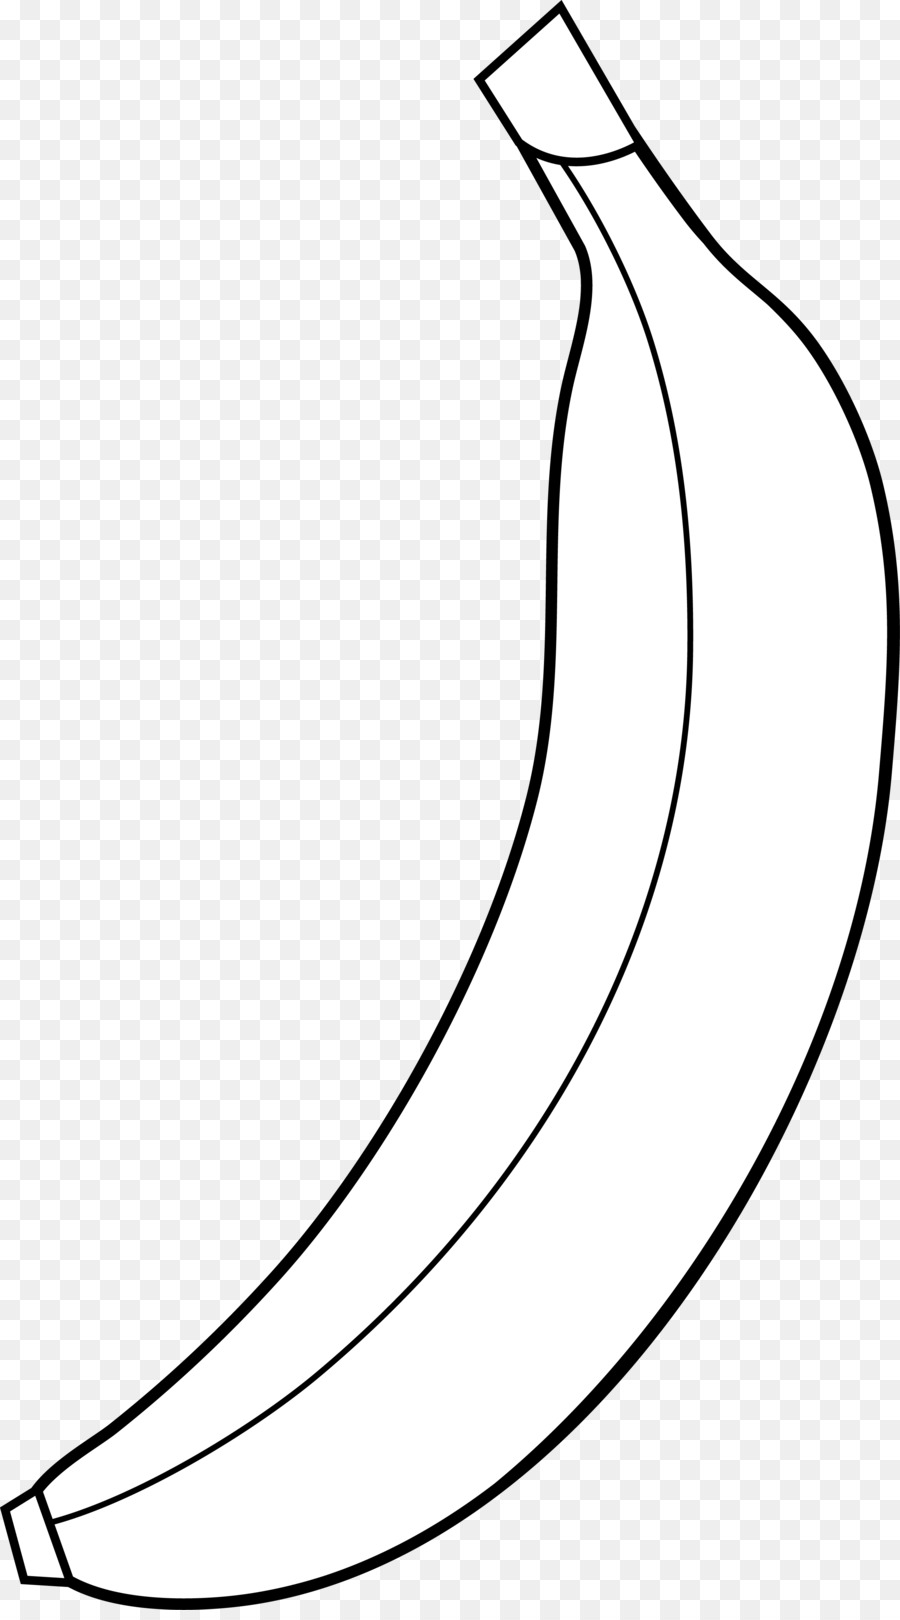 Banana Clipart Black And White clipart.